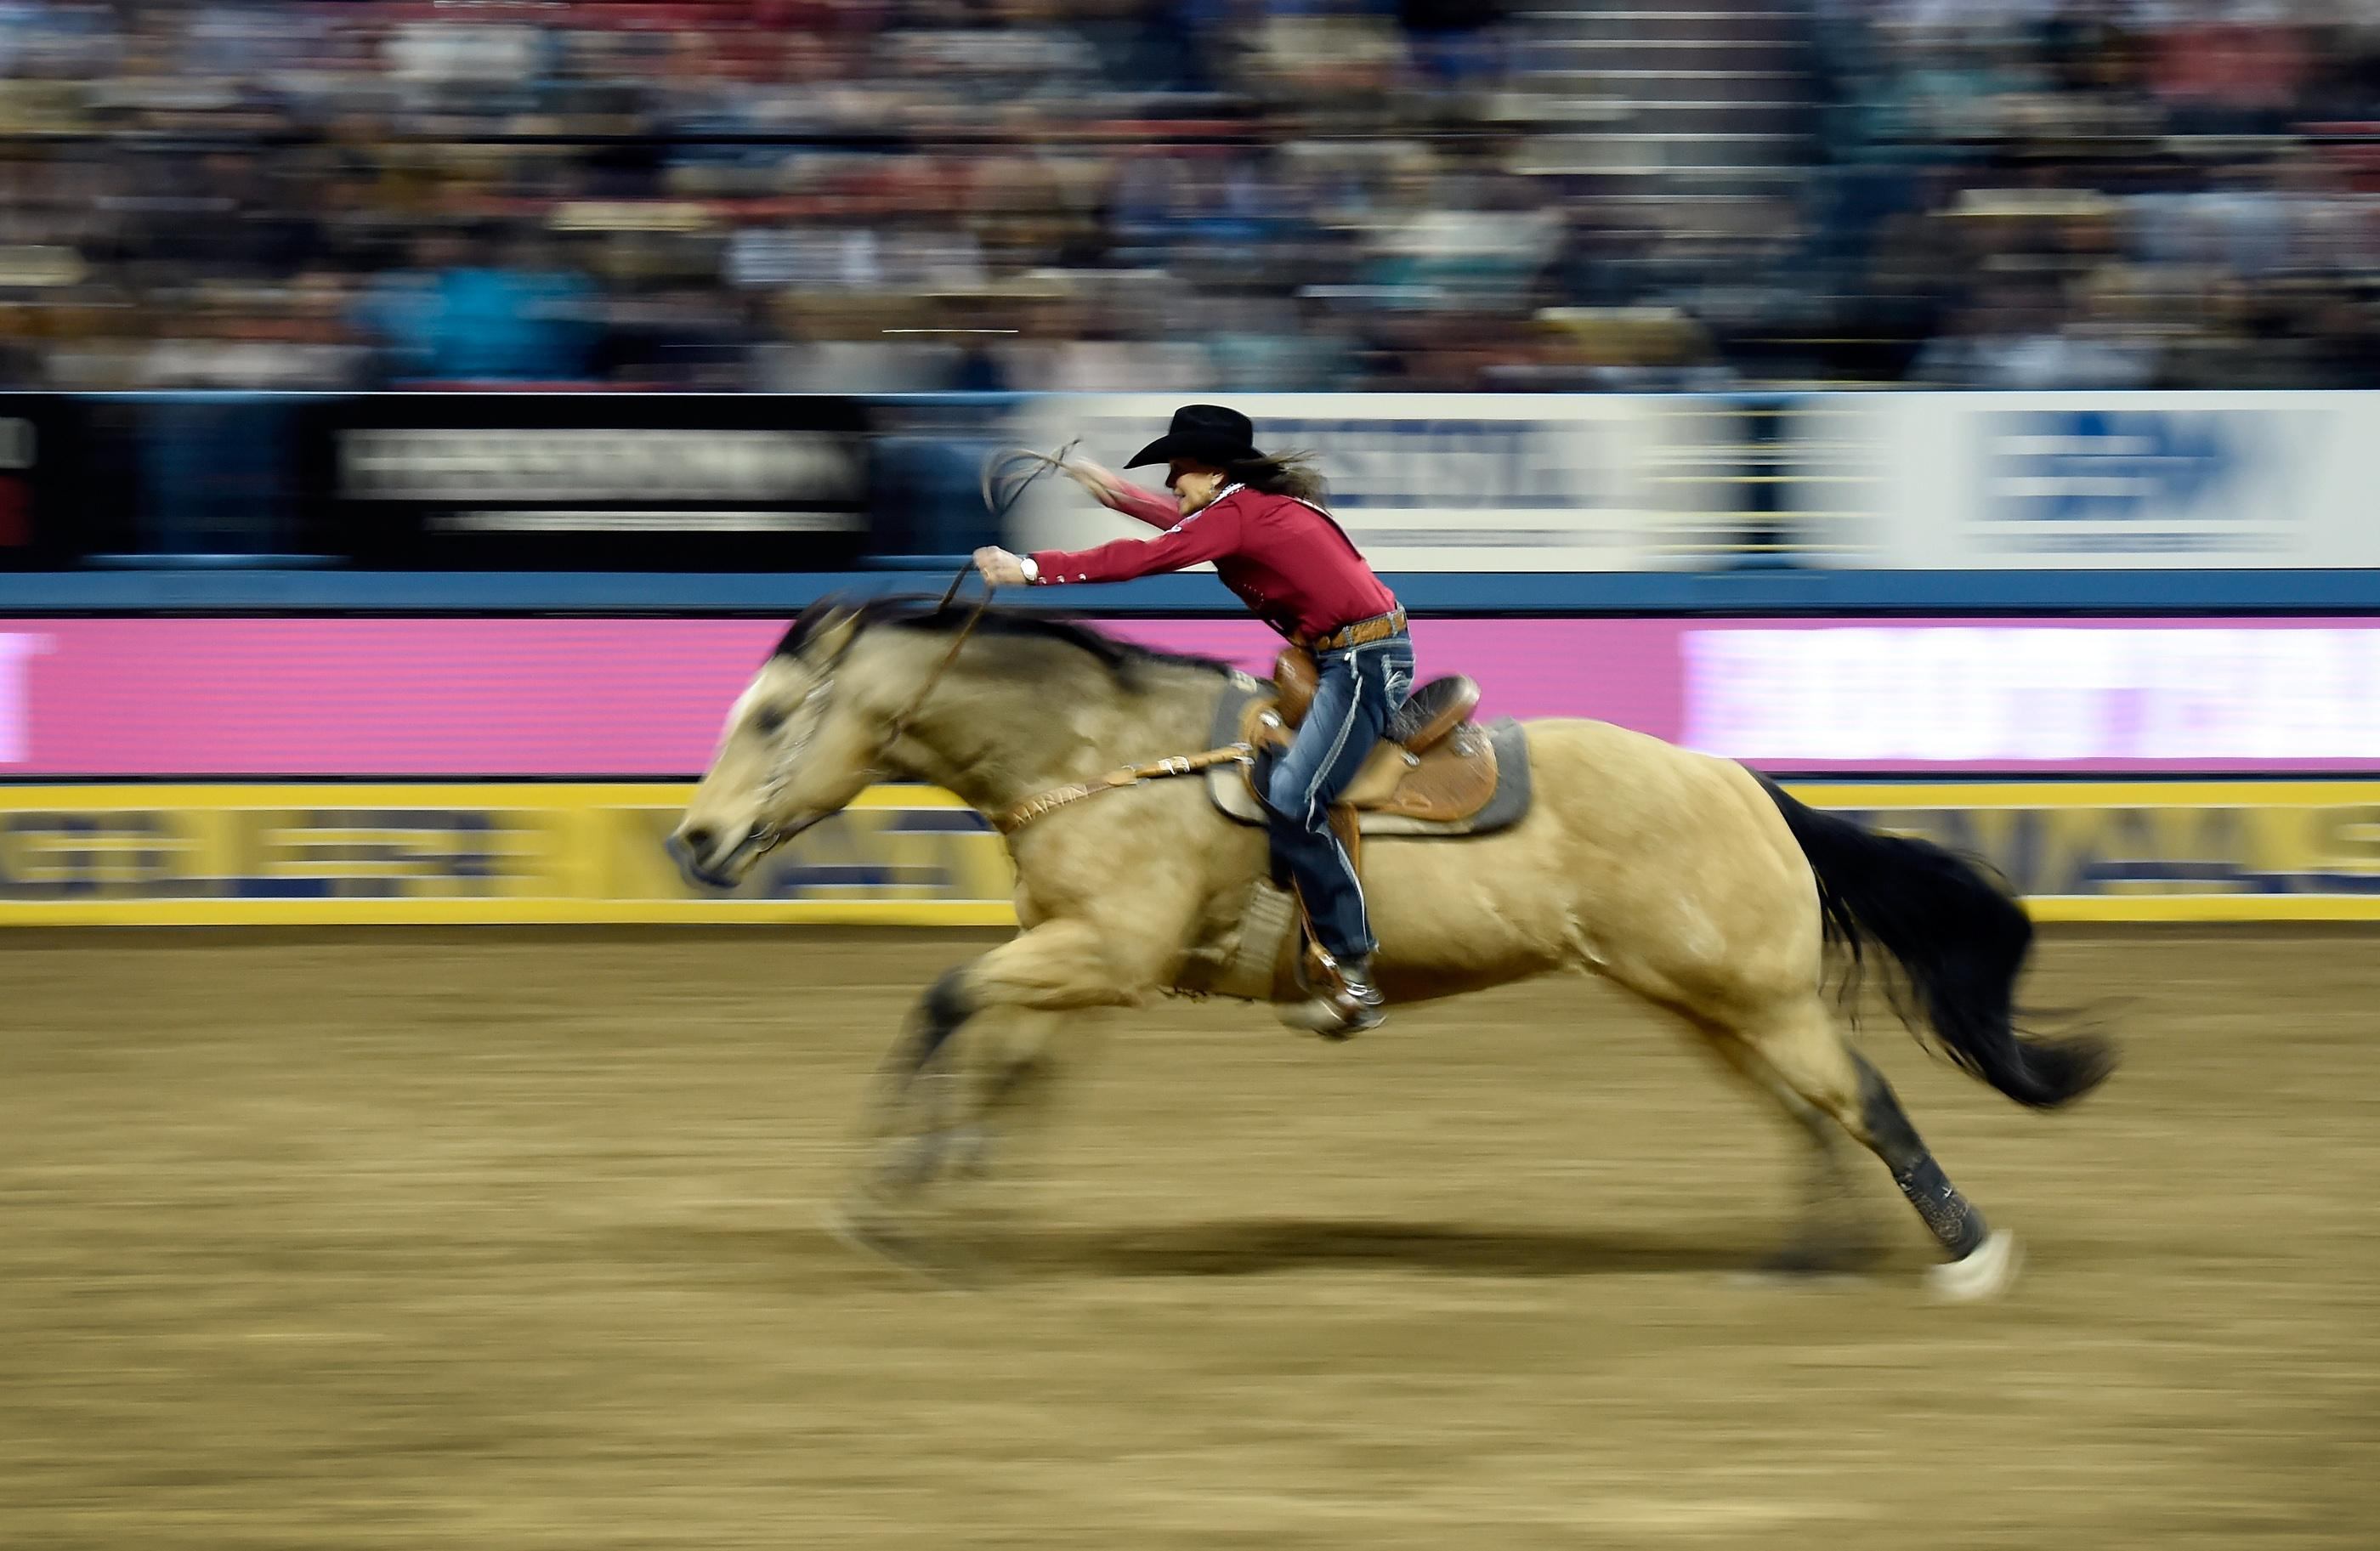 Lisa Lockhart from Oelrichs, South Dakota, competes in barrel racing during the seventh go-round of the National Finals Rodeo Wednesday, Dec. 13, 2017, in Las Vegas. CREDIT: David Becker/Las Vegas News Bureau